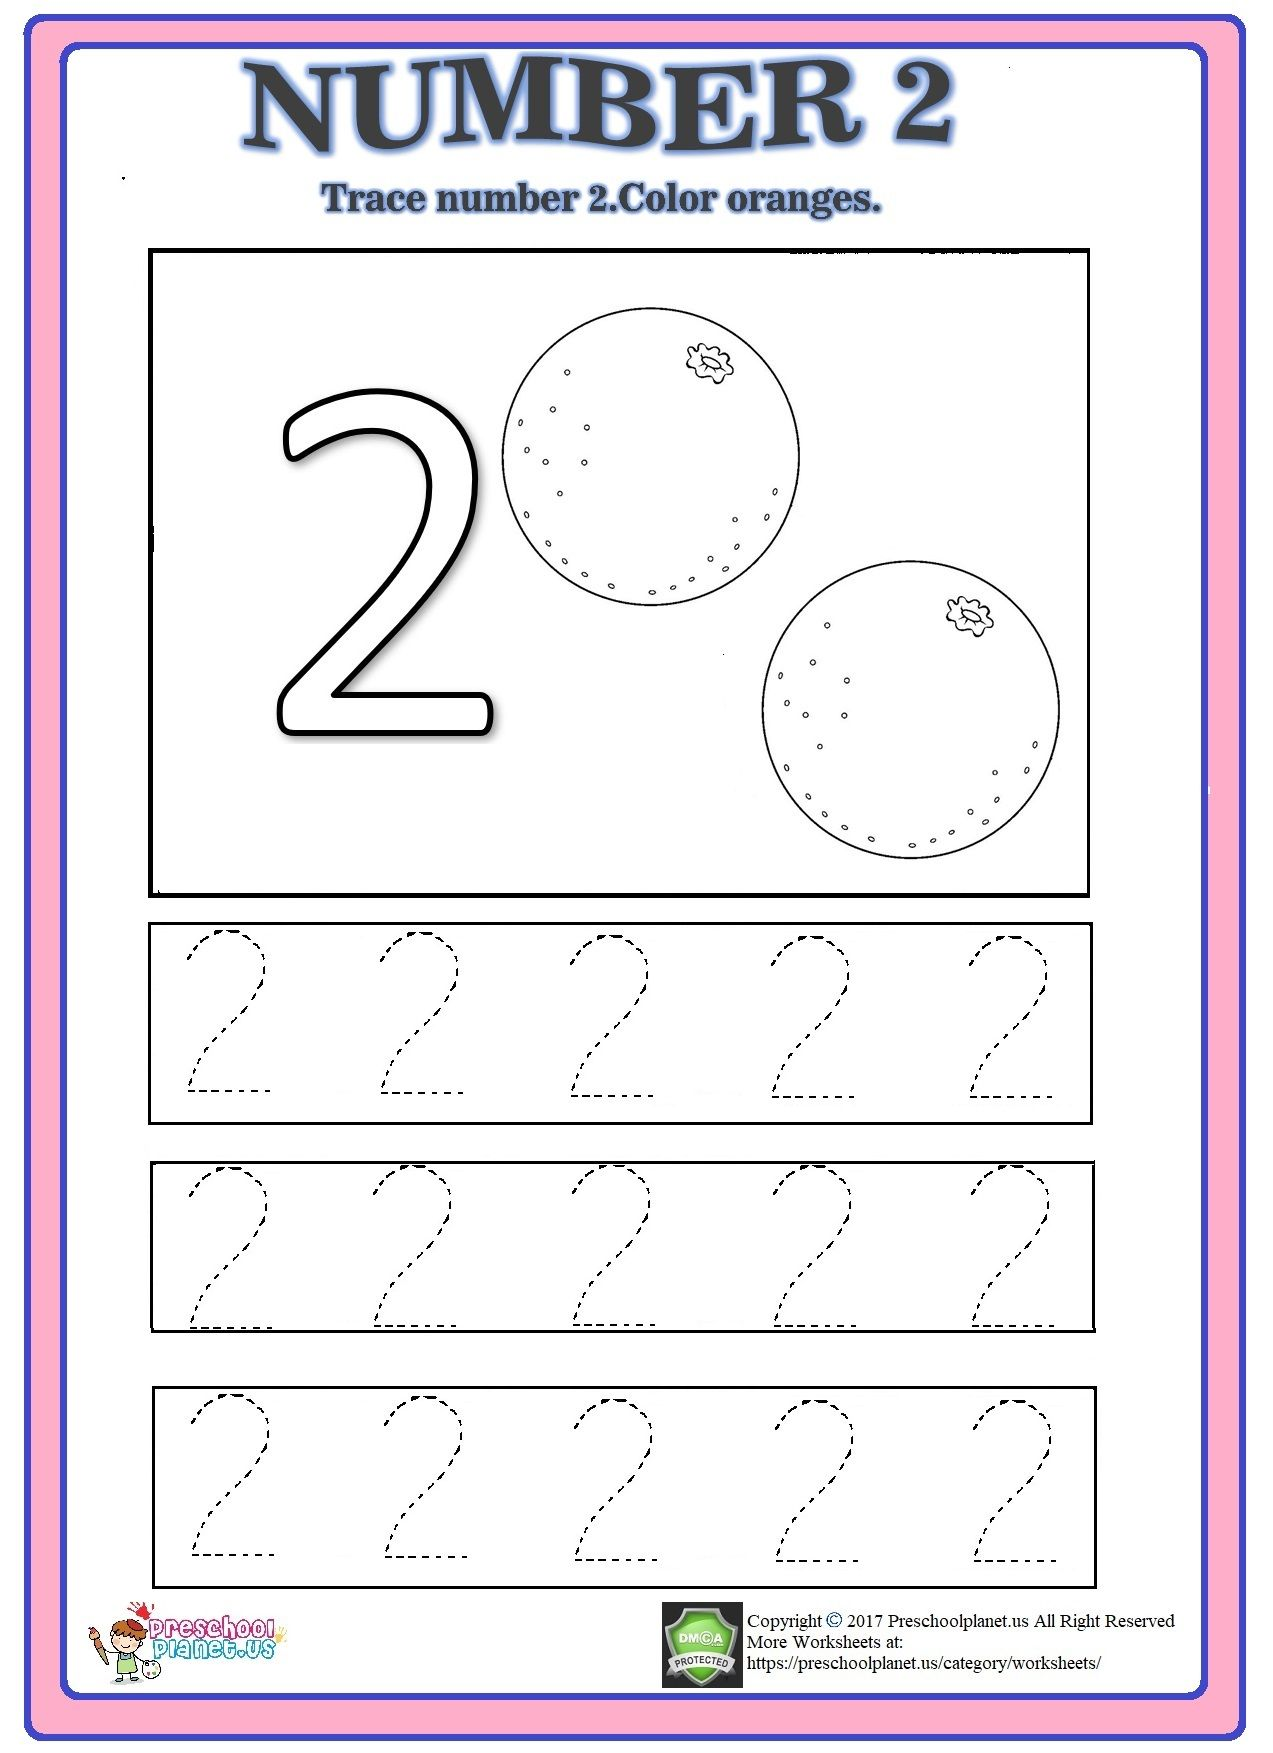 Number 2 trace worksheet Preschool worksheets, Numbers